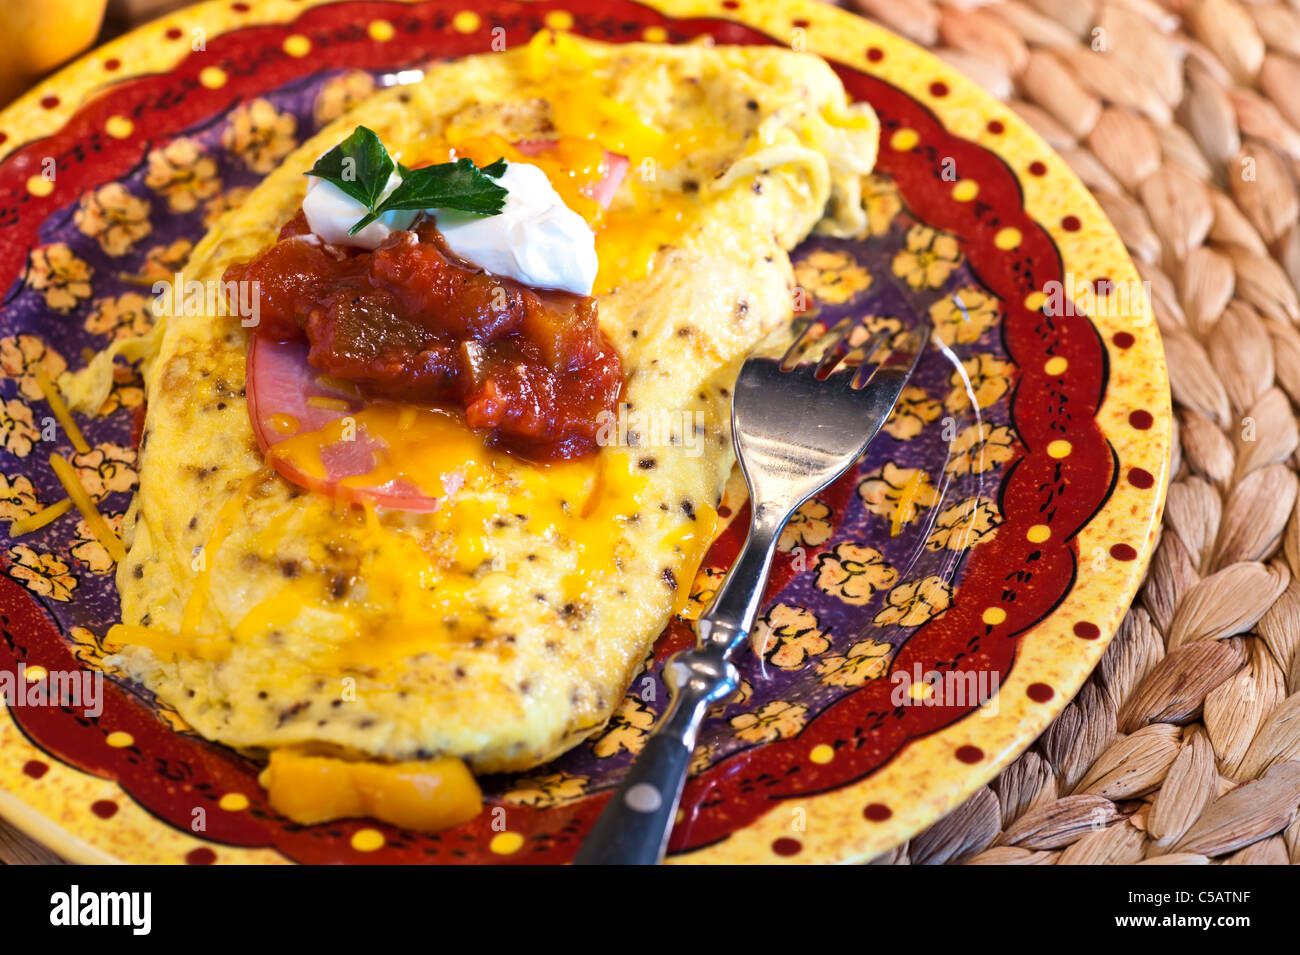 Southwestern Omelet with mushrooms, onions sweet peppers with cheese and Canadian bacon on top. - Stock Image